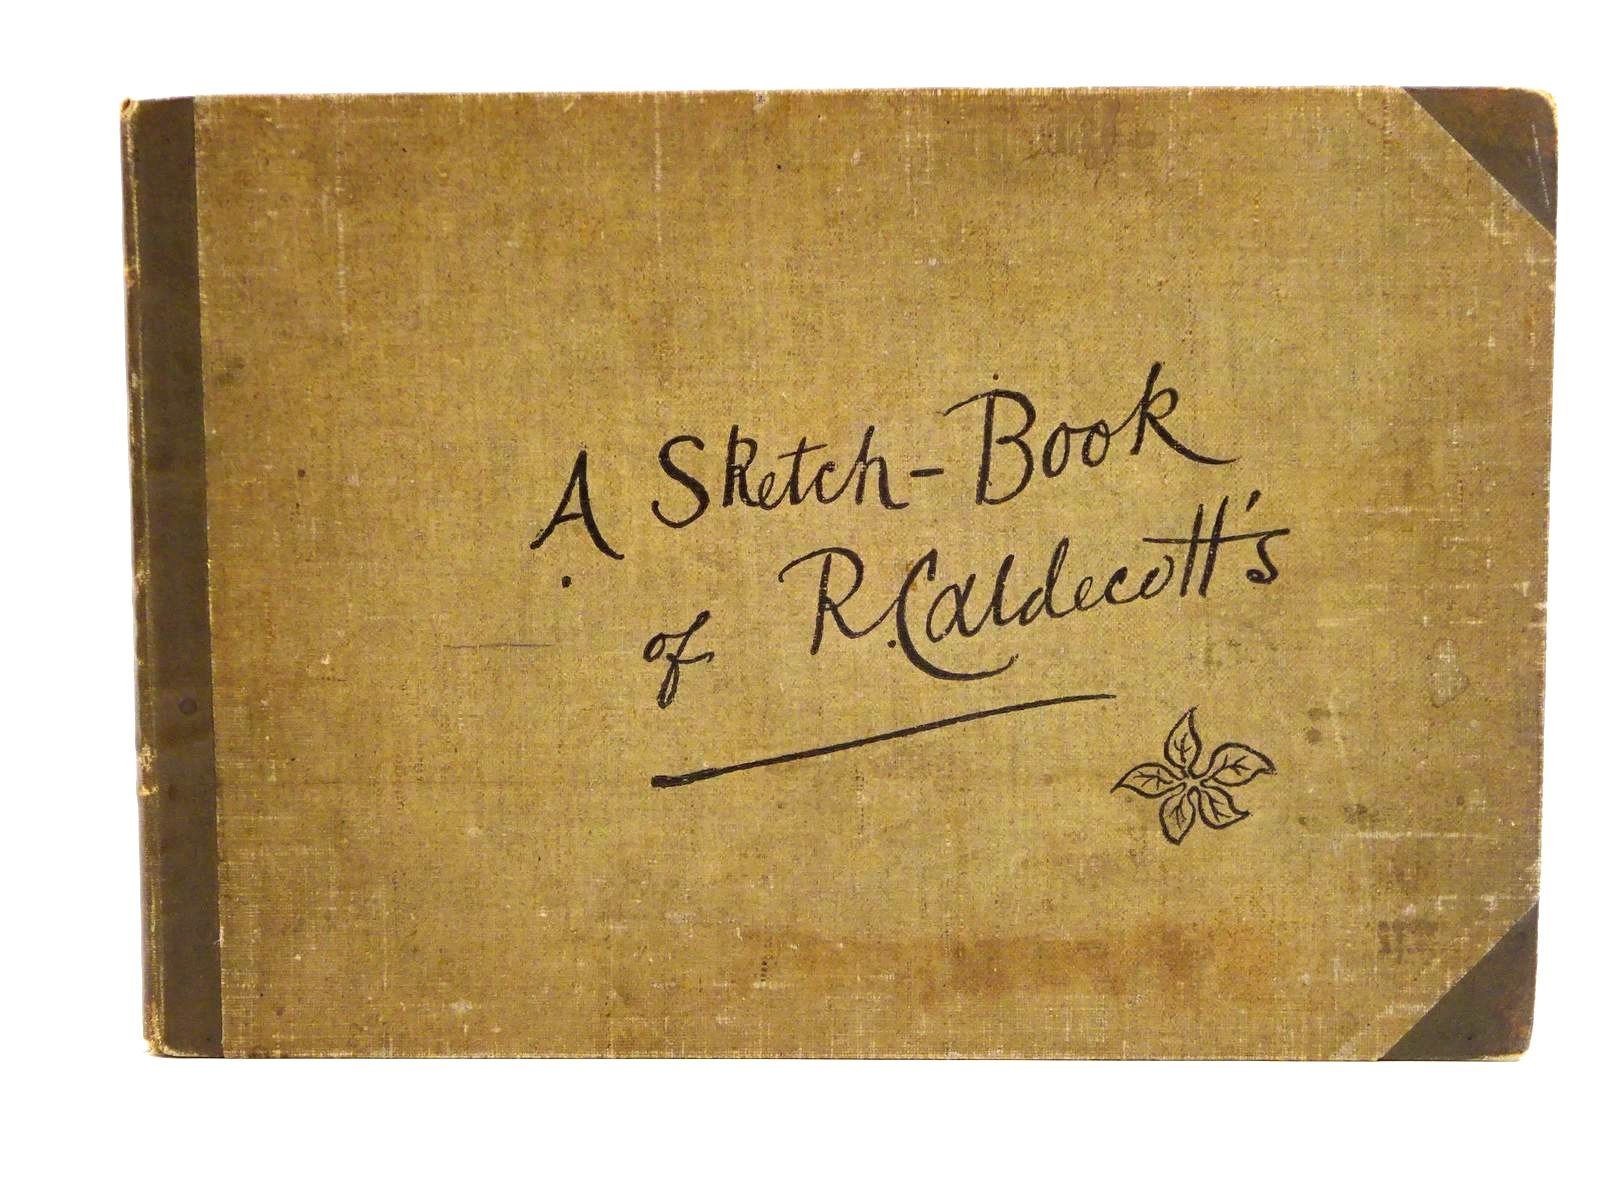 Photo of A SKETCH-BOOK OF R. CALDECOTT'S illustrated by Caldecott, Randolph published by George Routledge & Sons (STOCK CODE: 1318255)  for sale by Stella & Rose's Books